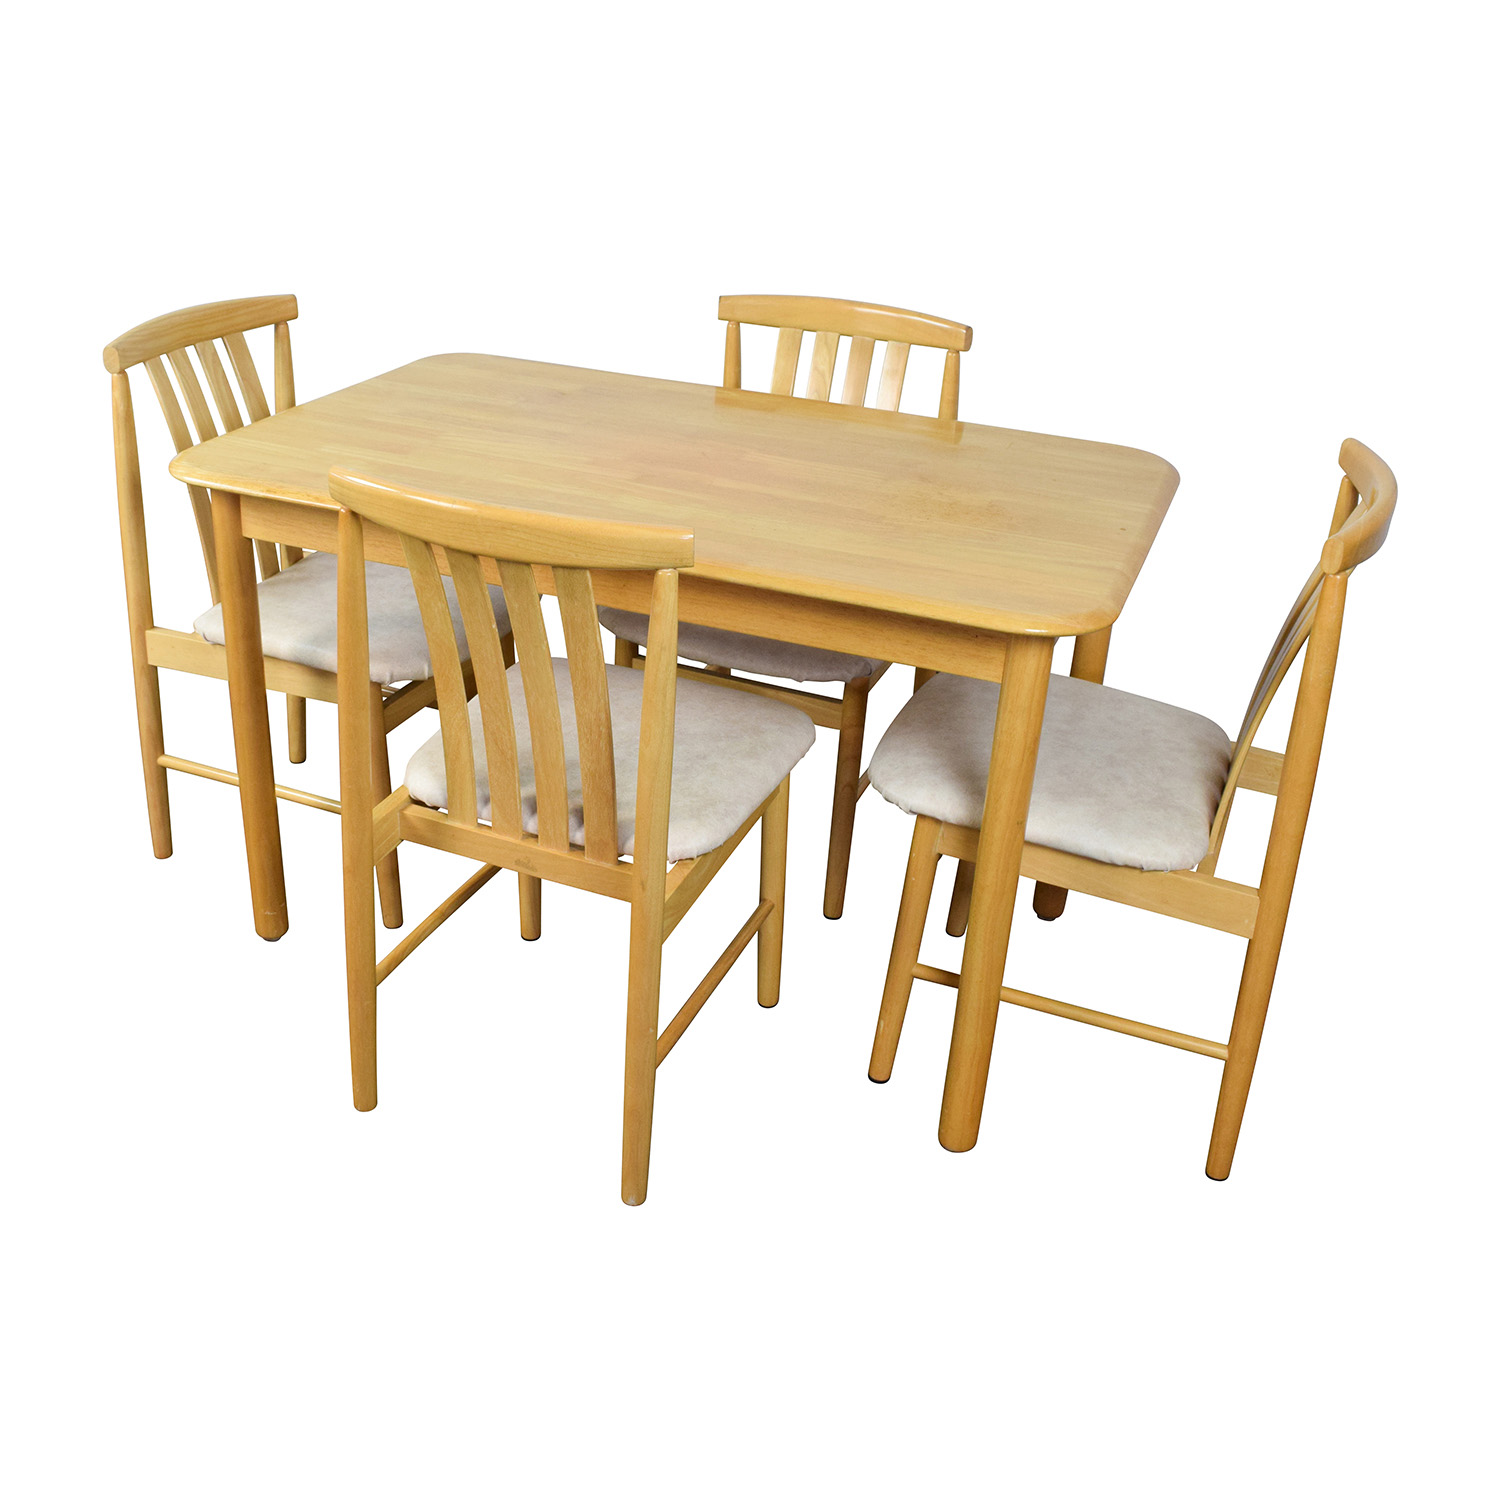 Light Wood Dining Table with Four Chairs